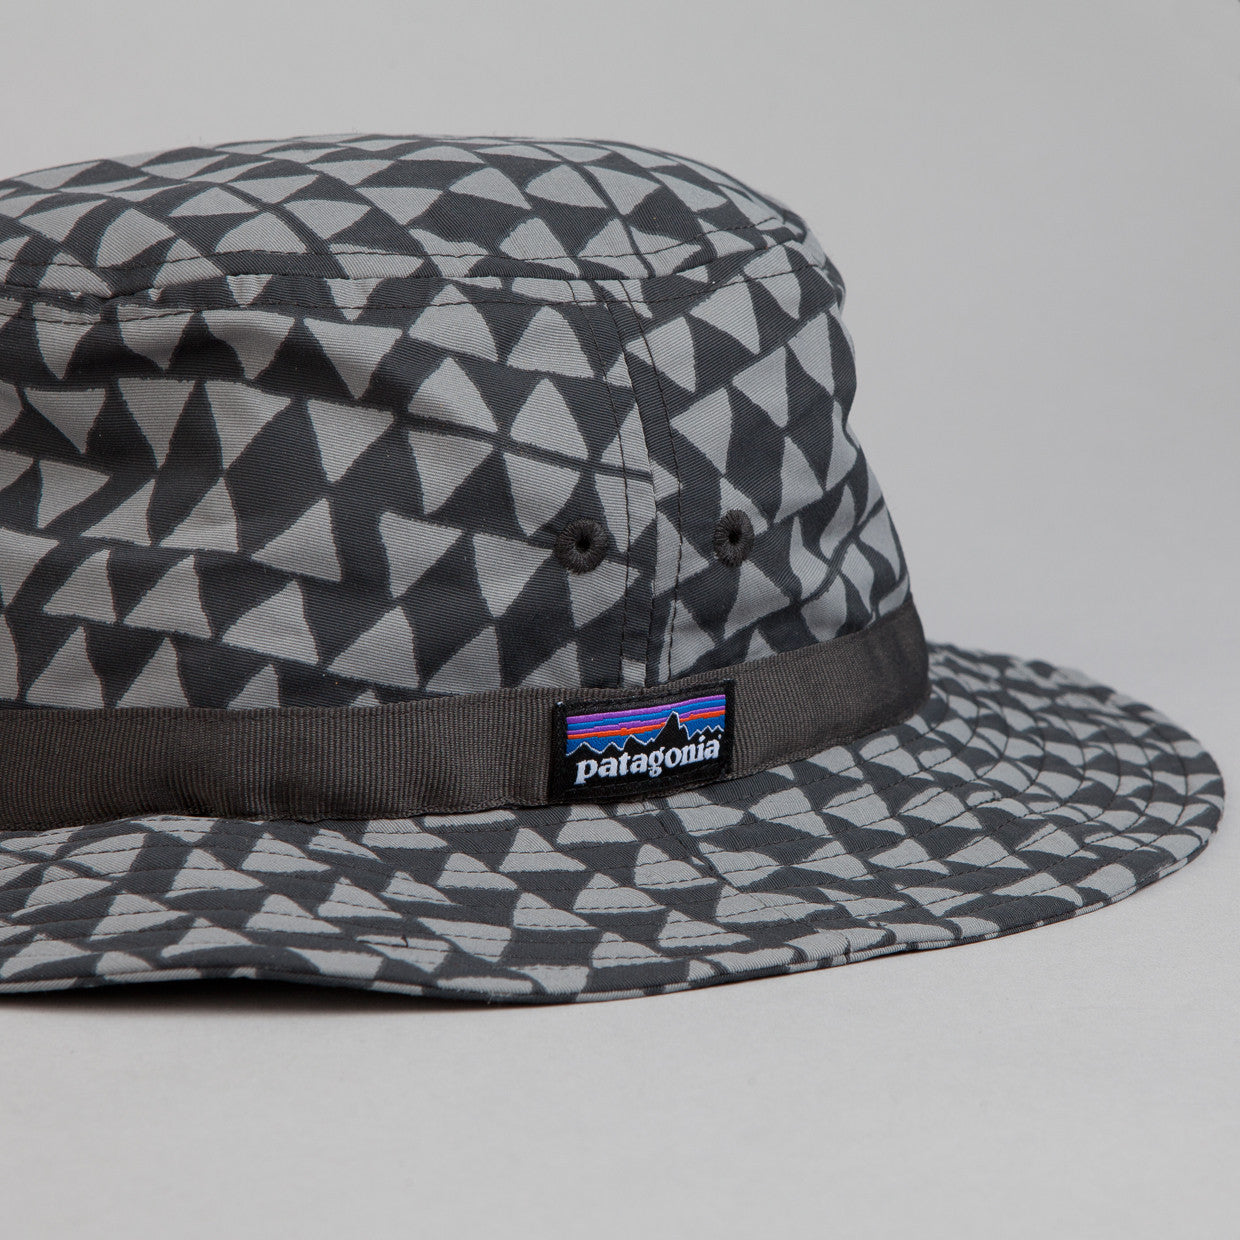 Patagonia Bucket Hat Shark's Teeth Rockwall